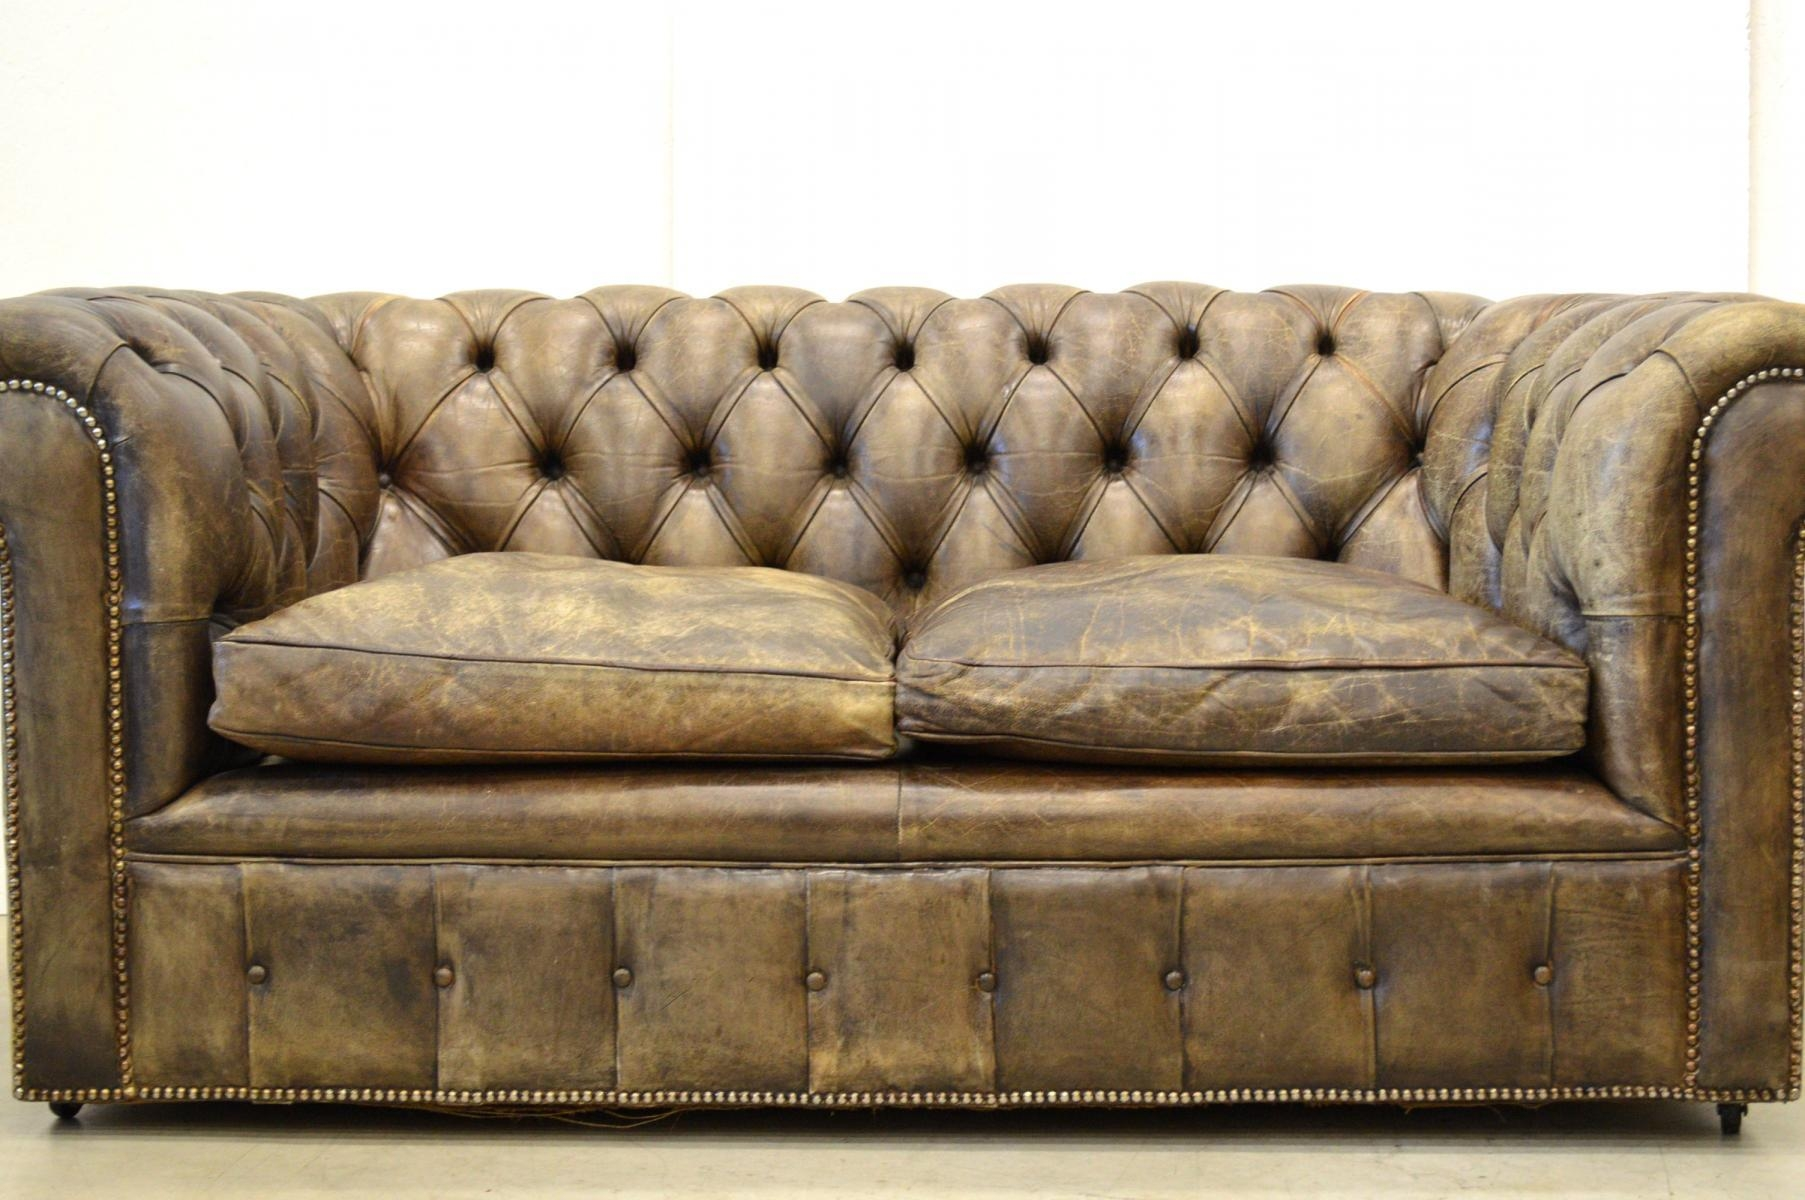 Storage Vintage English Olive Green Leather Chesterfield Sofa 2 Within Vintage Chesterfield Sofas (Image 9 of 20)